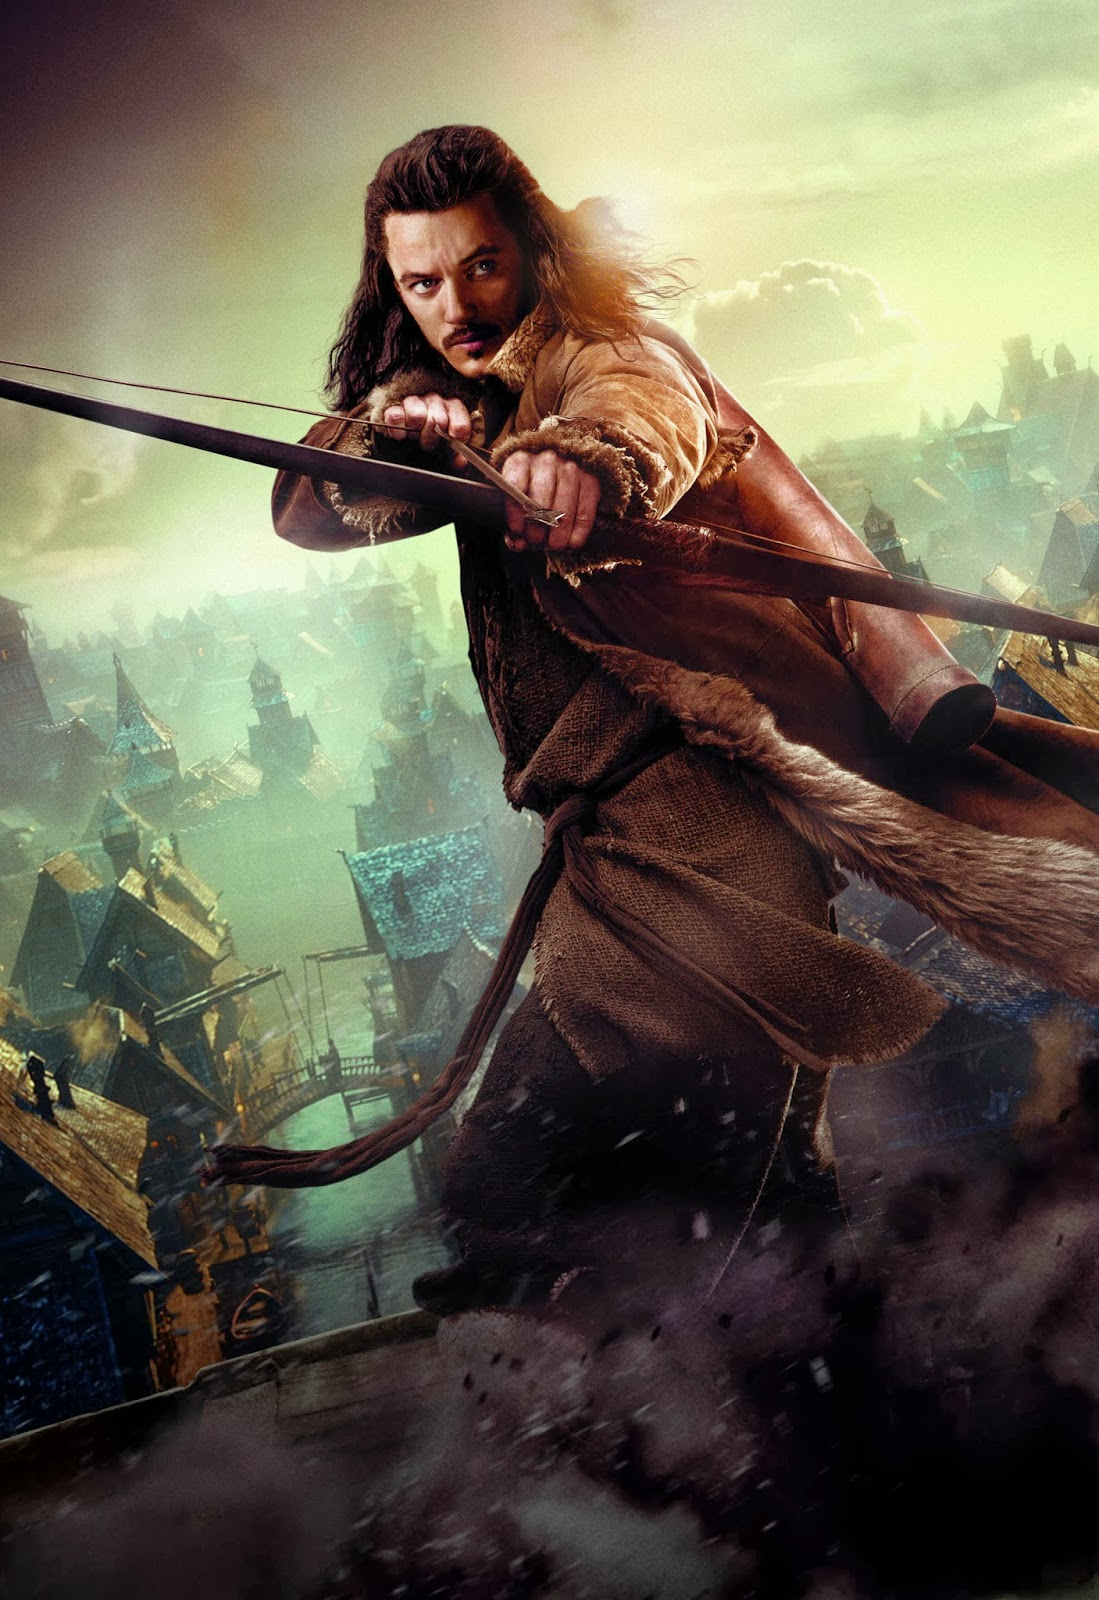 the hobbit the desolation of smaug download in tamil